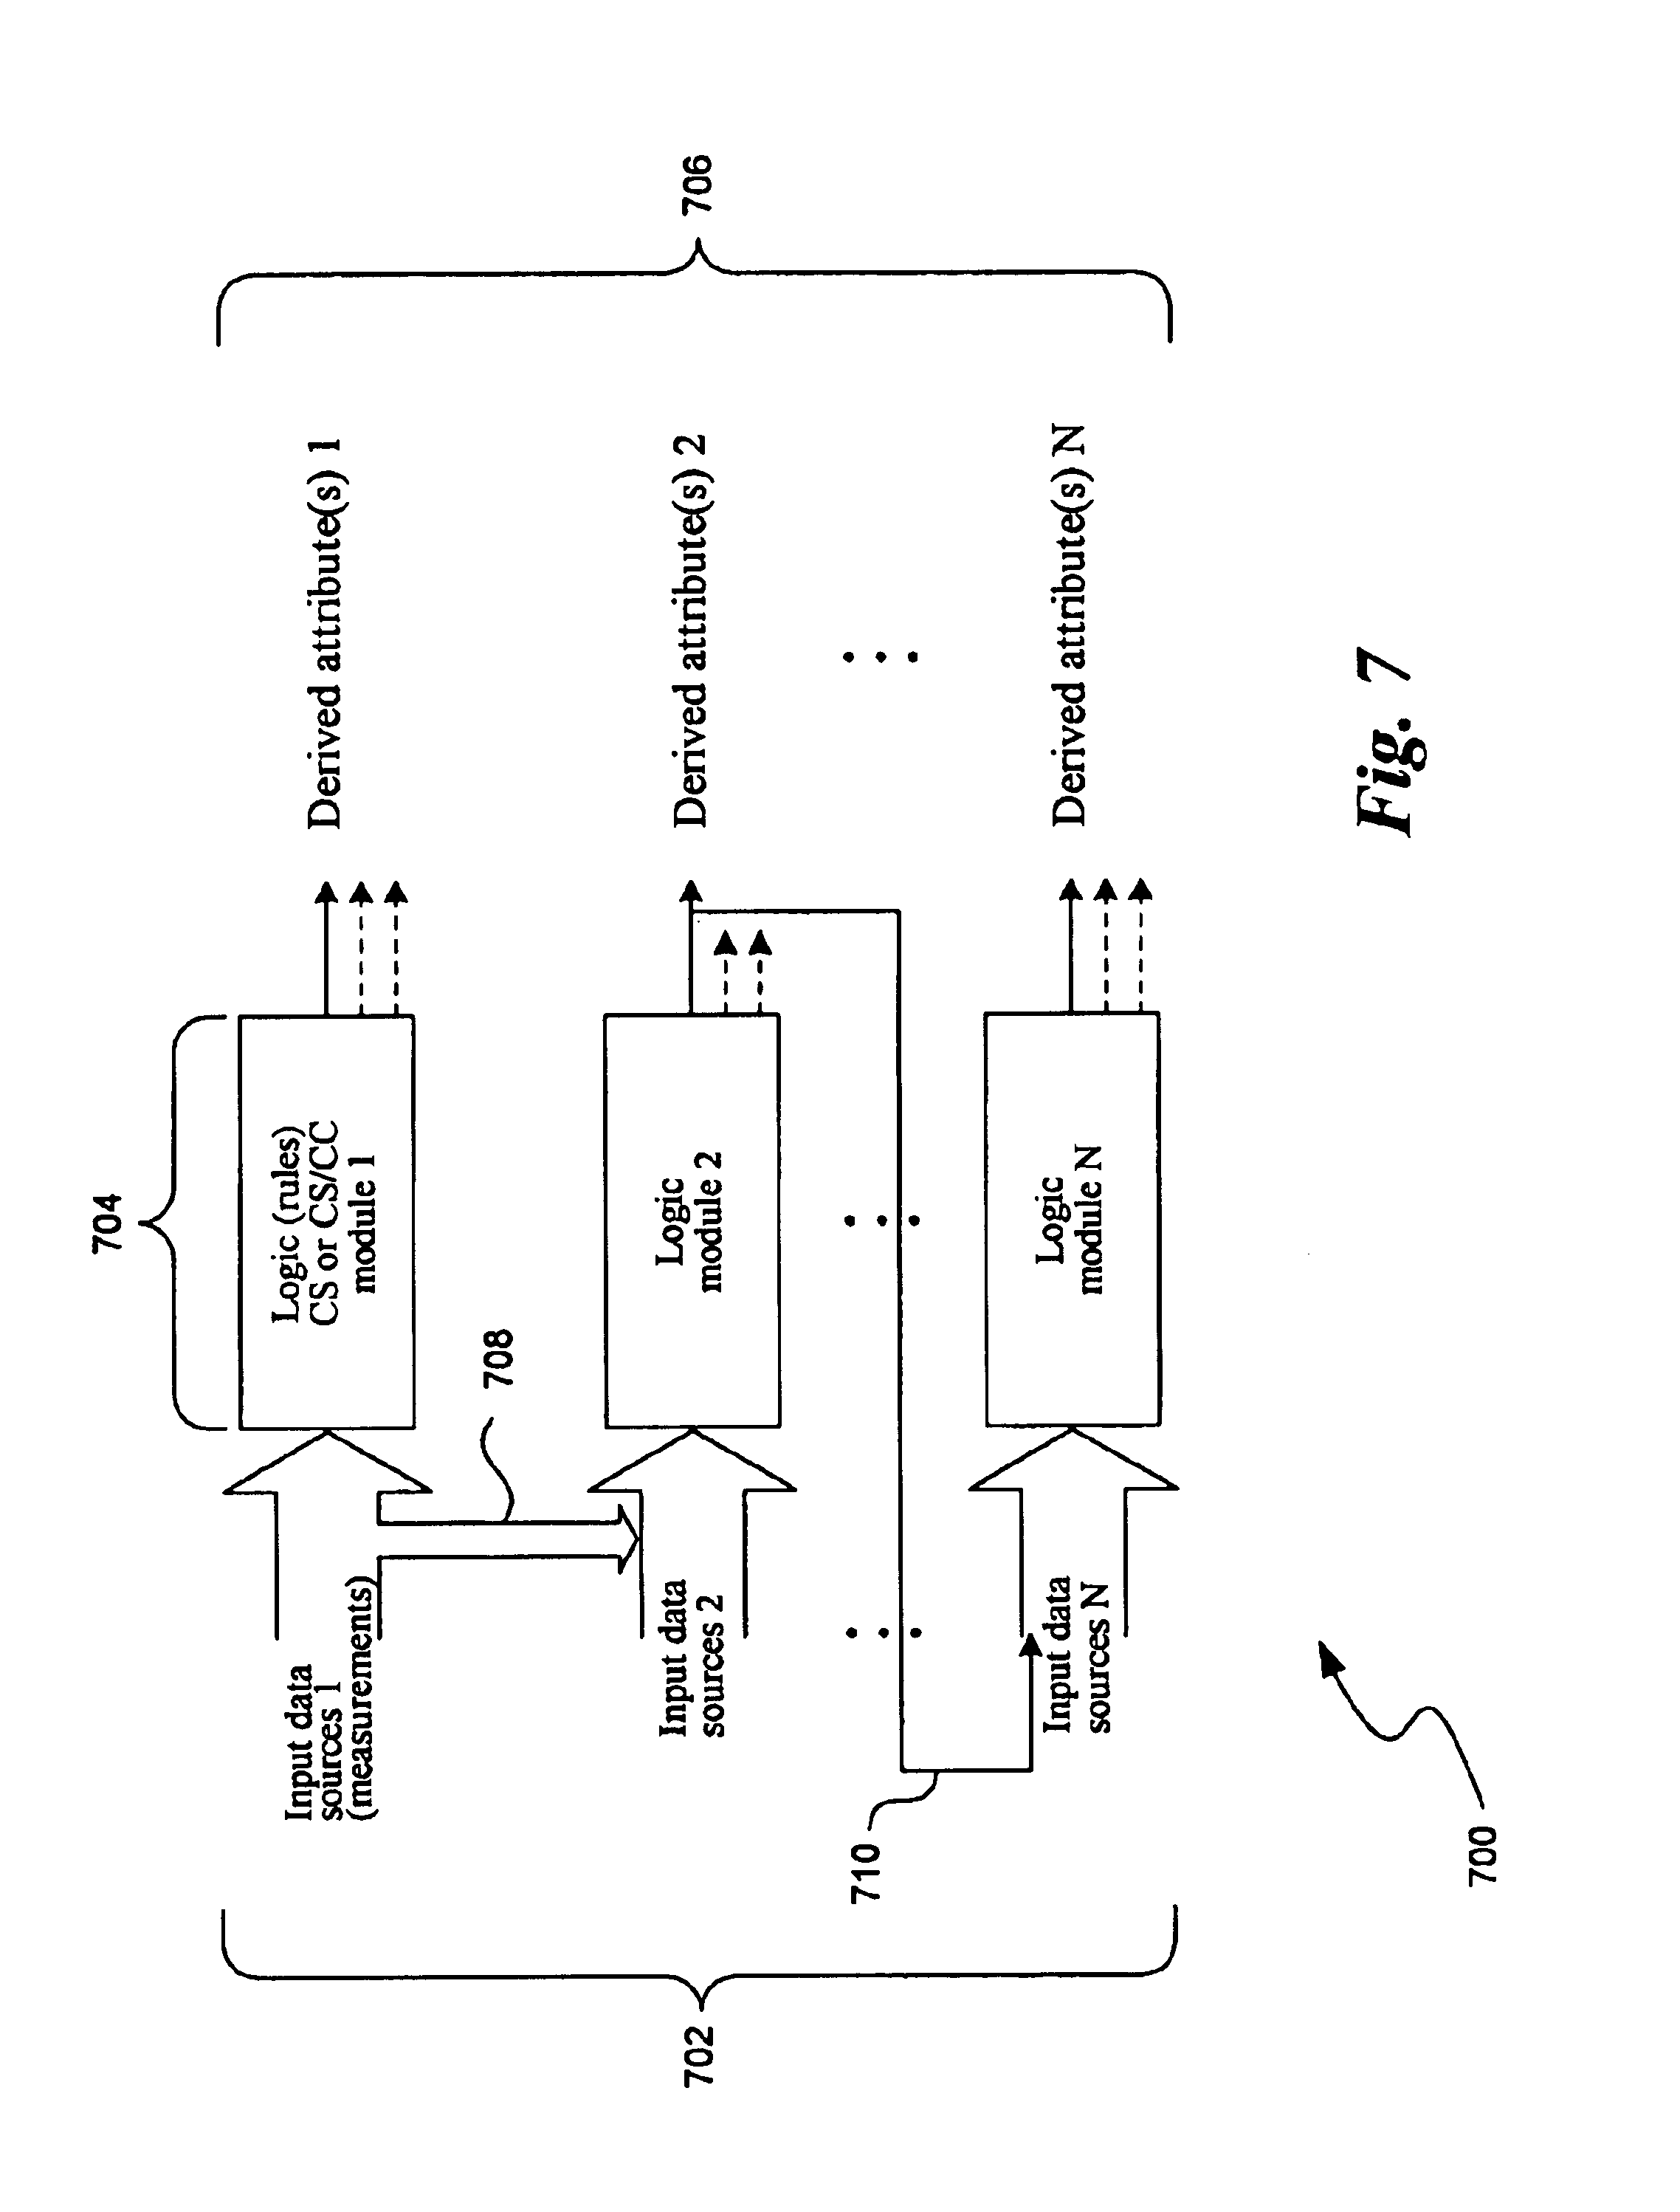 Patent Us6842877 Contextual Responses Based On Automated Learning Basic Tachometer Circuit Using An Ir Led Receiver Couple Drawing